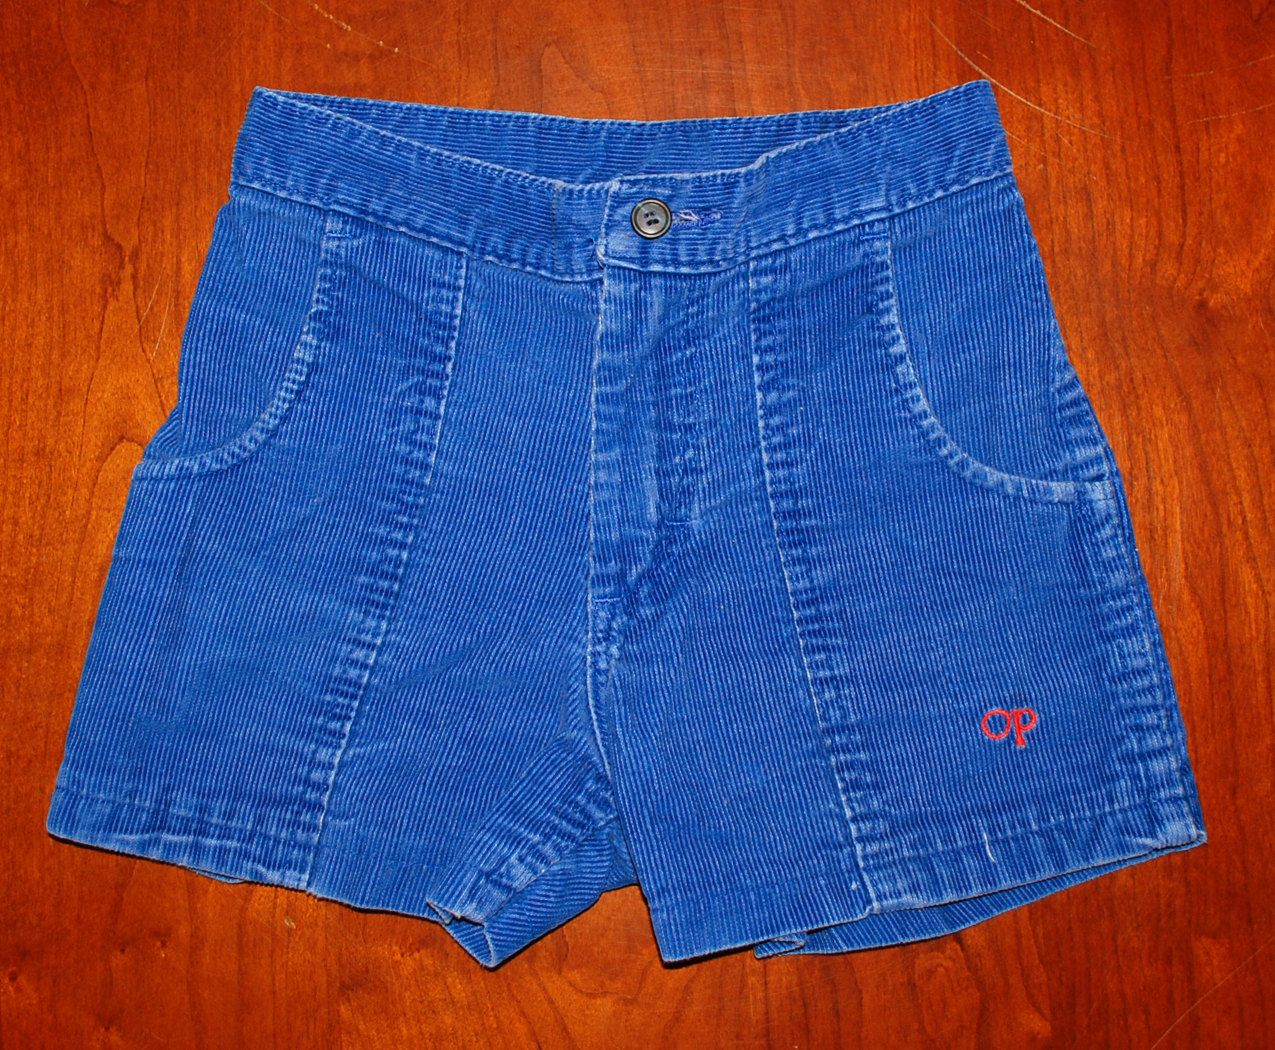 29bf062c47 Remember the Classic OP Corduroy Shorts? how many colors did you have? (I  Want Some!! These are The Best Shorts!)